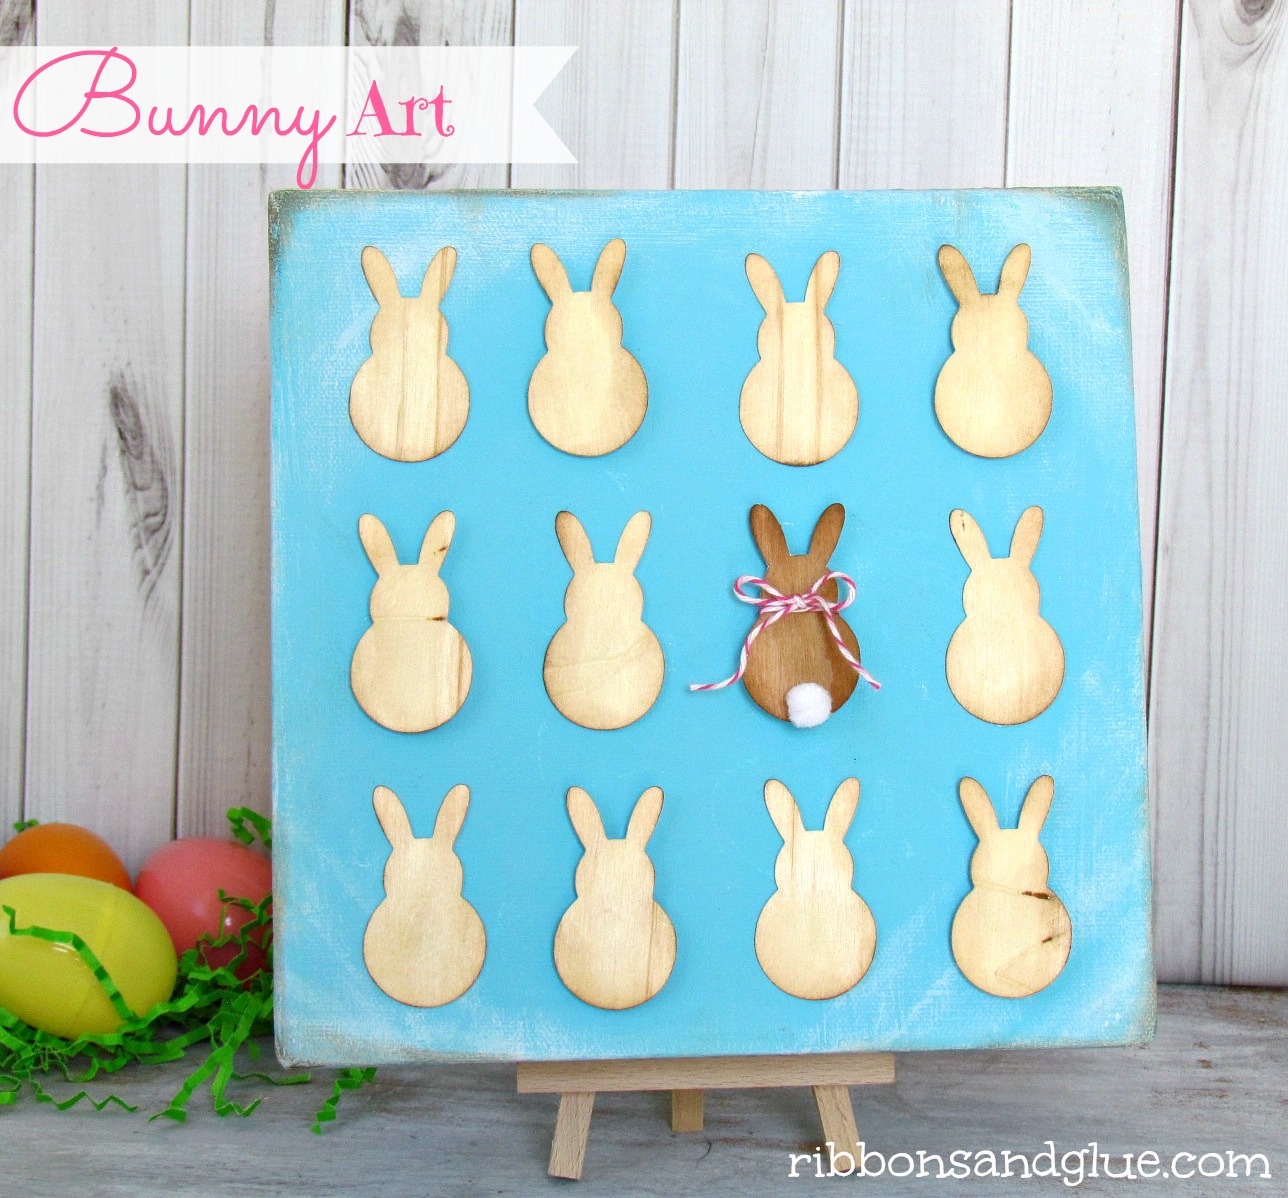 Bunny Art Canvas